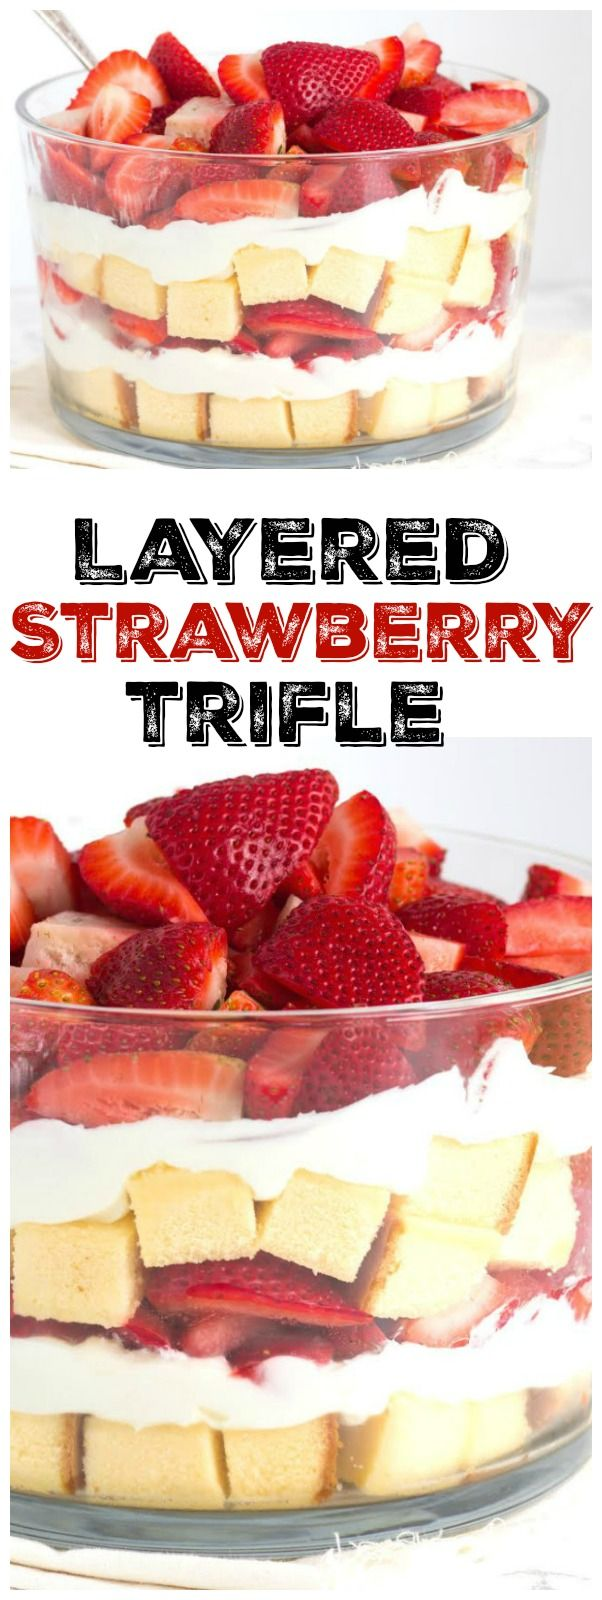 Super easy to make Layered Strawberry Trifle dessert recipe -- with a sweetened cheesecake whipped cream between layers of pound cake and fresh strawberries.  Recipe from RecipeGirl.com.